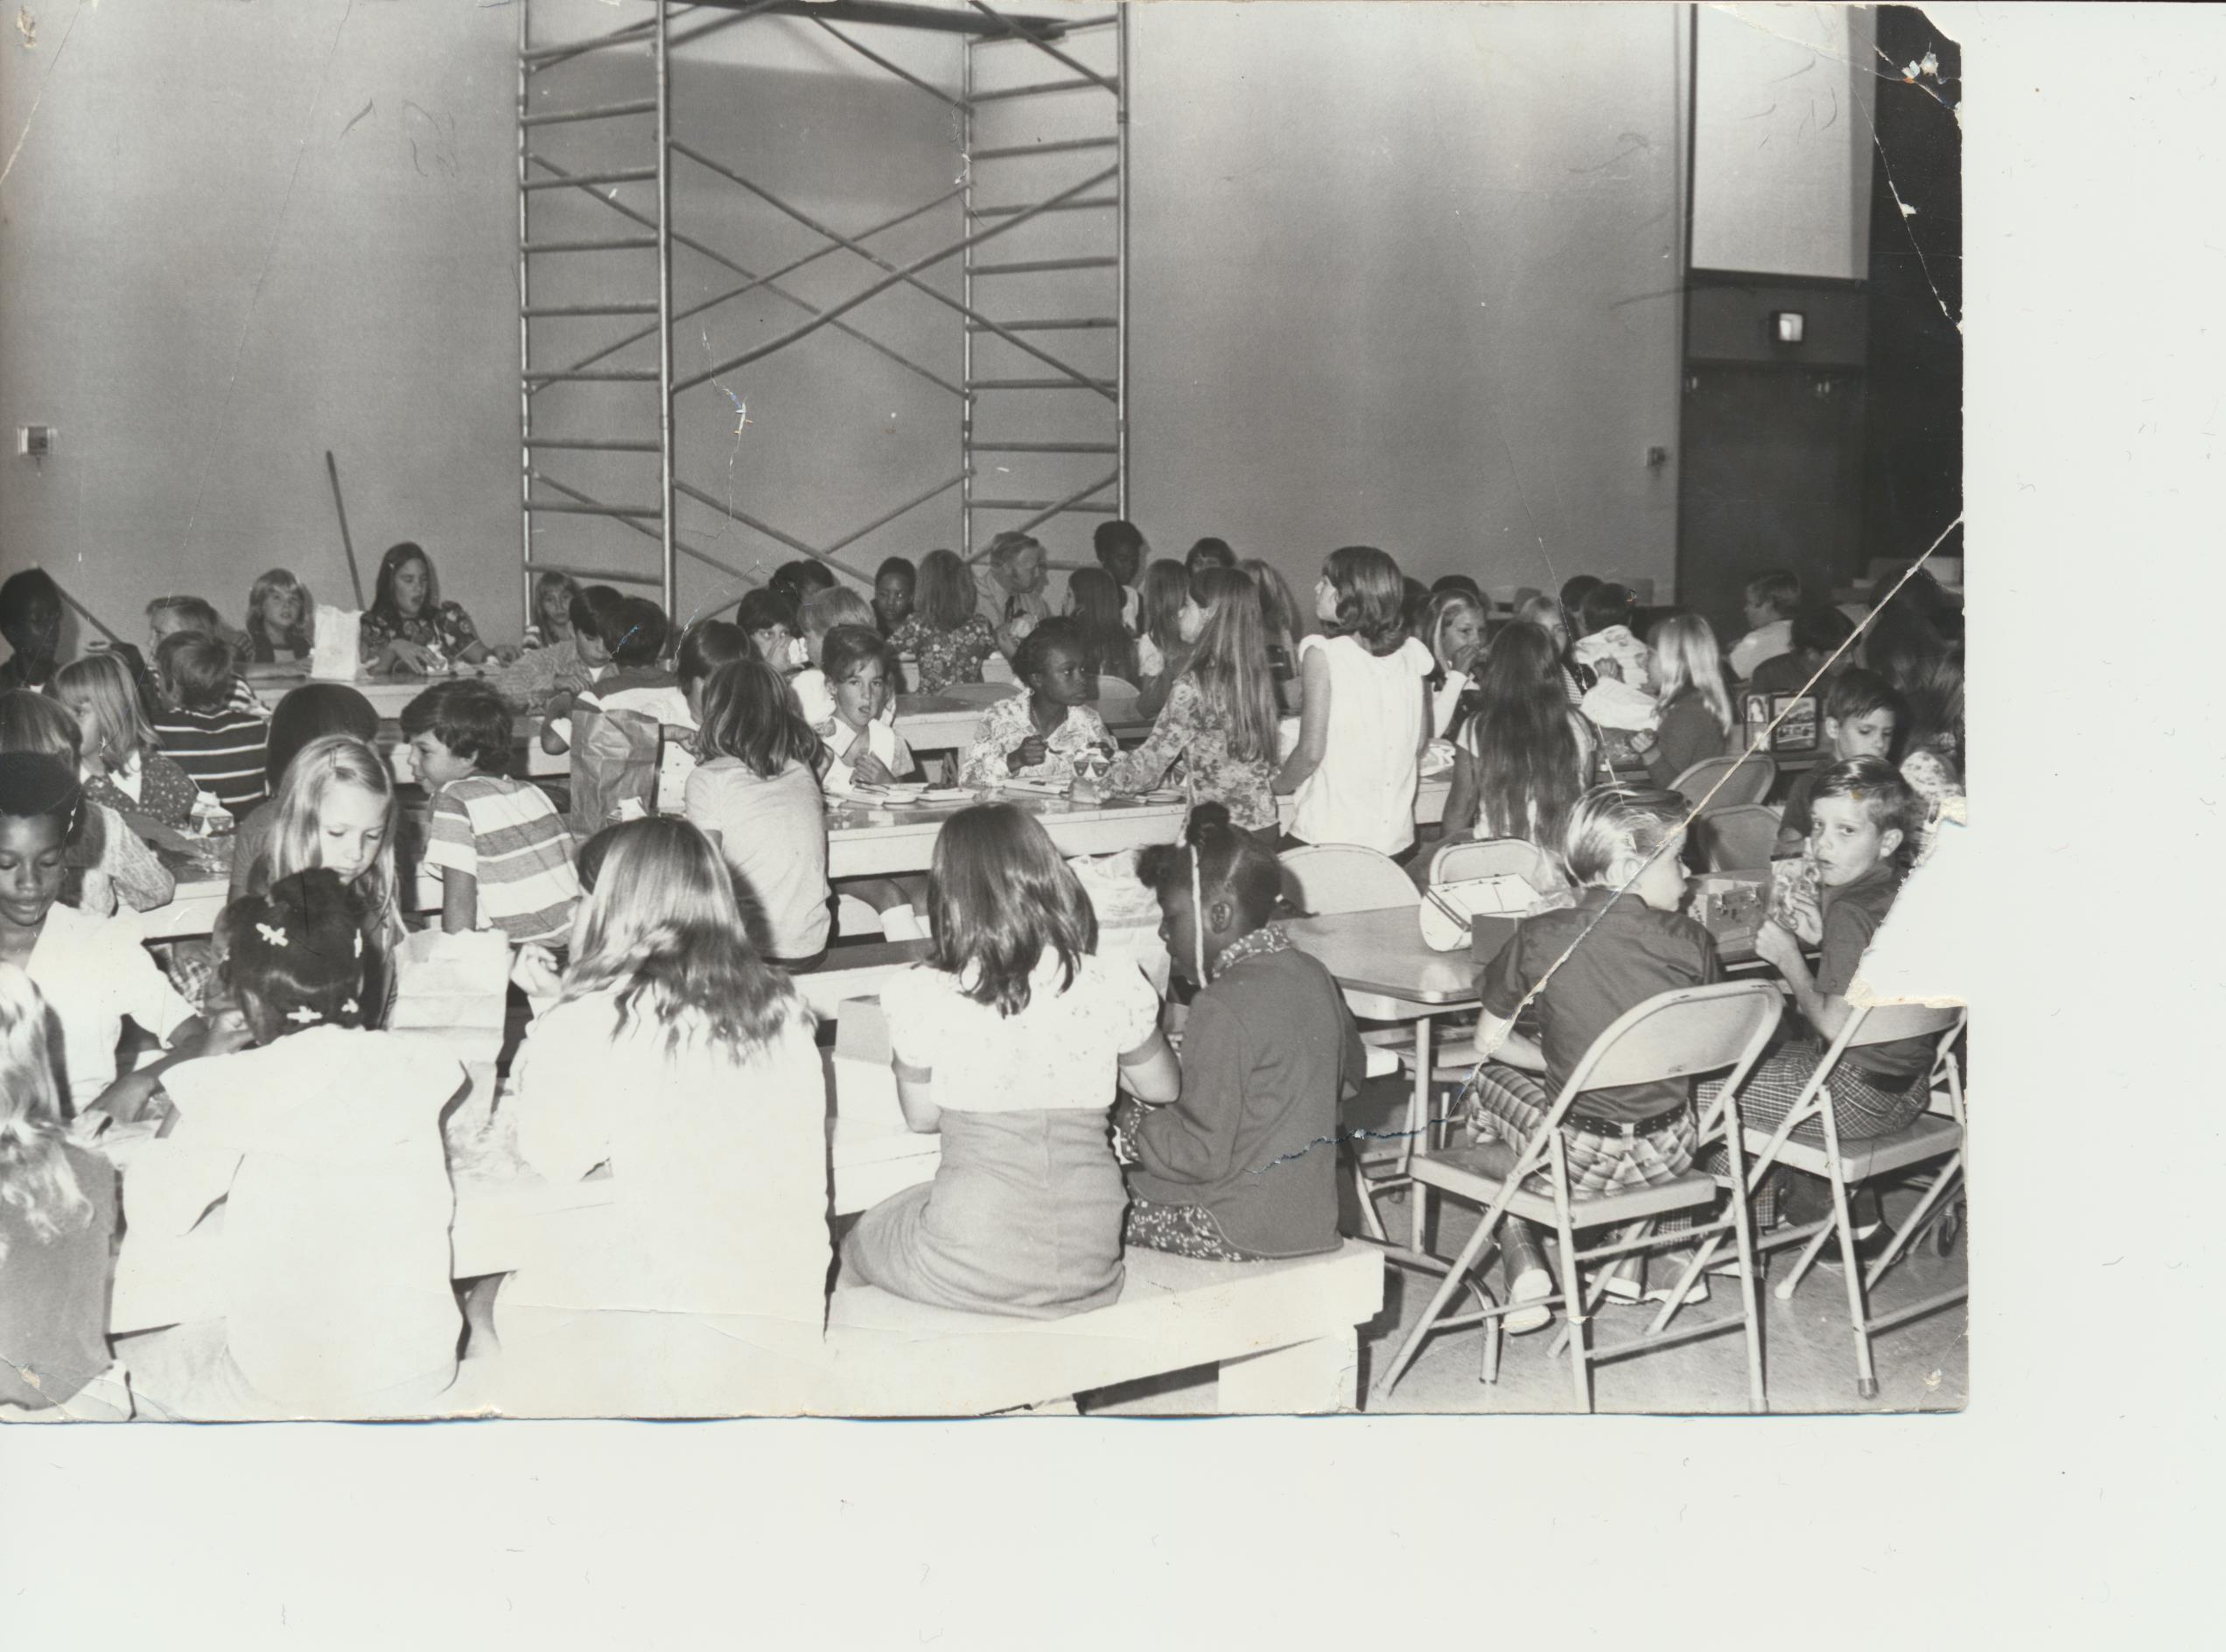 1508511299-old_photo_of_students_eating_the_in_wyandotte_cafeteria